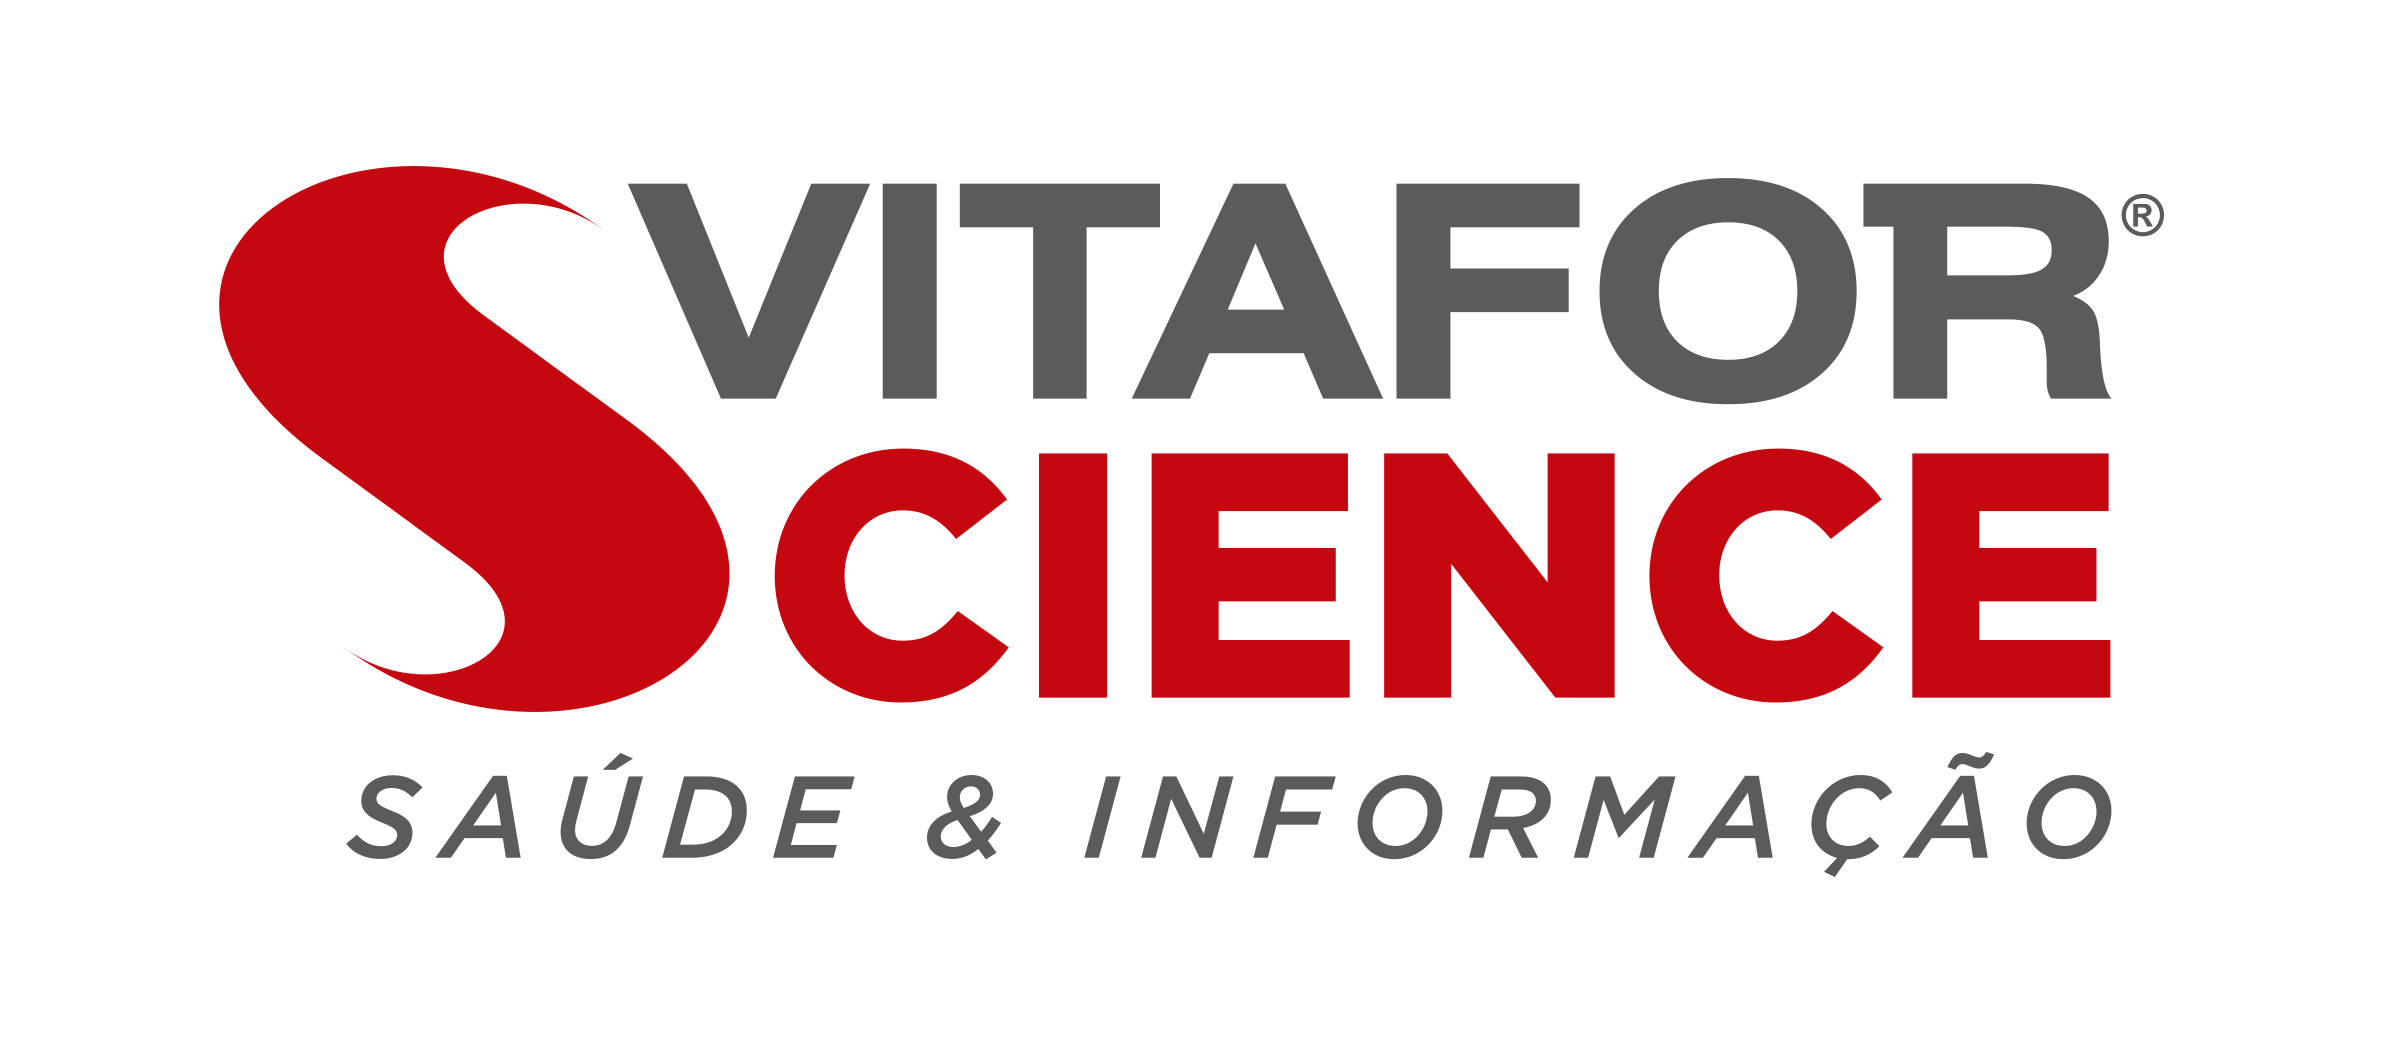 Logotipo Vitafor Science